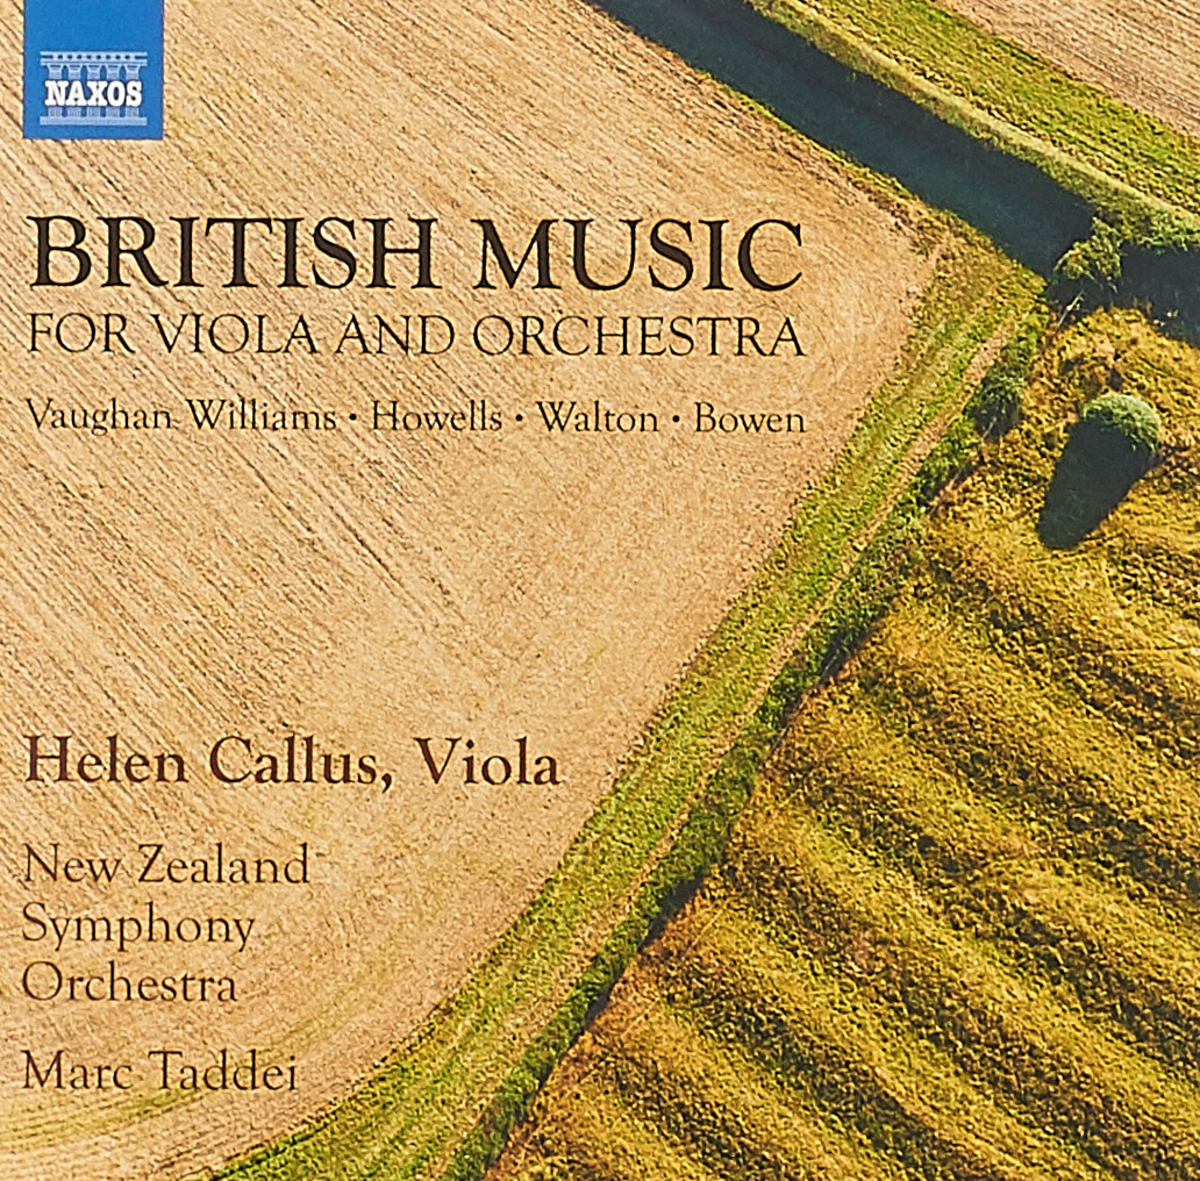 цена на Хелен Каллус,New Zealand Symphony Orchestra,Marc Taddei Helen Callus. British Music For Viola And Orchestra. Vaughan Williams, Howells, Walton, Bowen